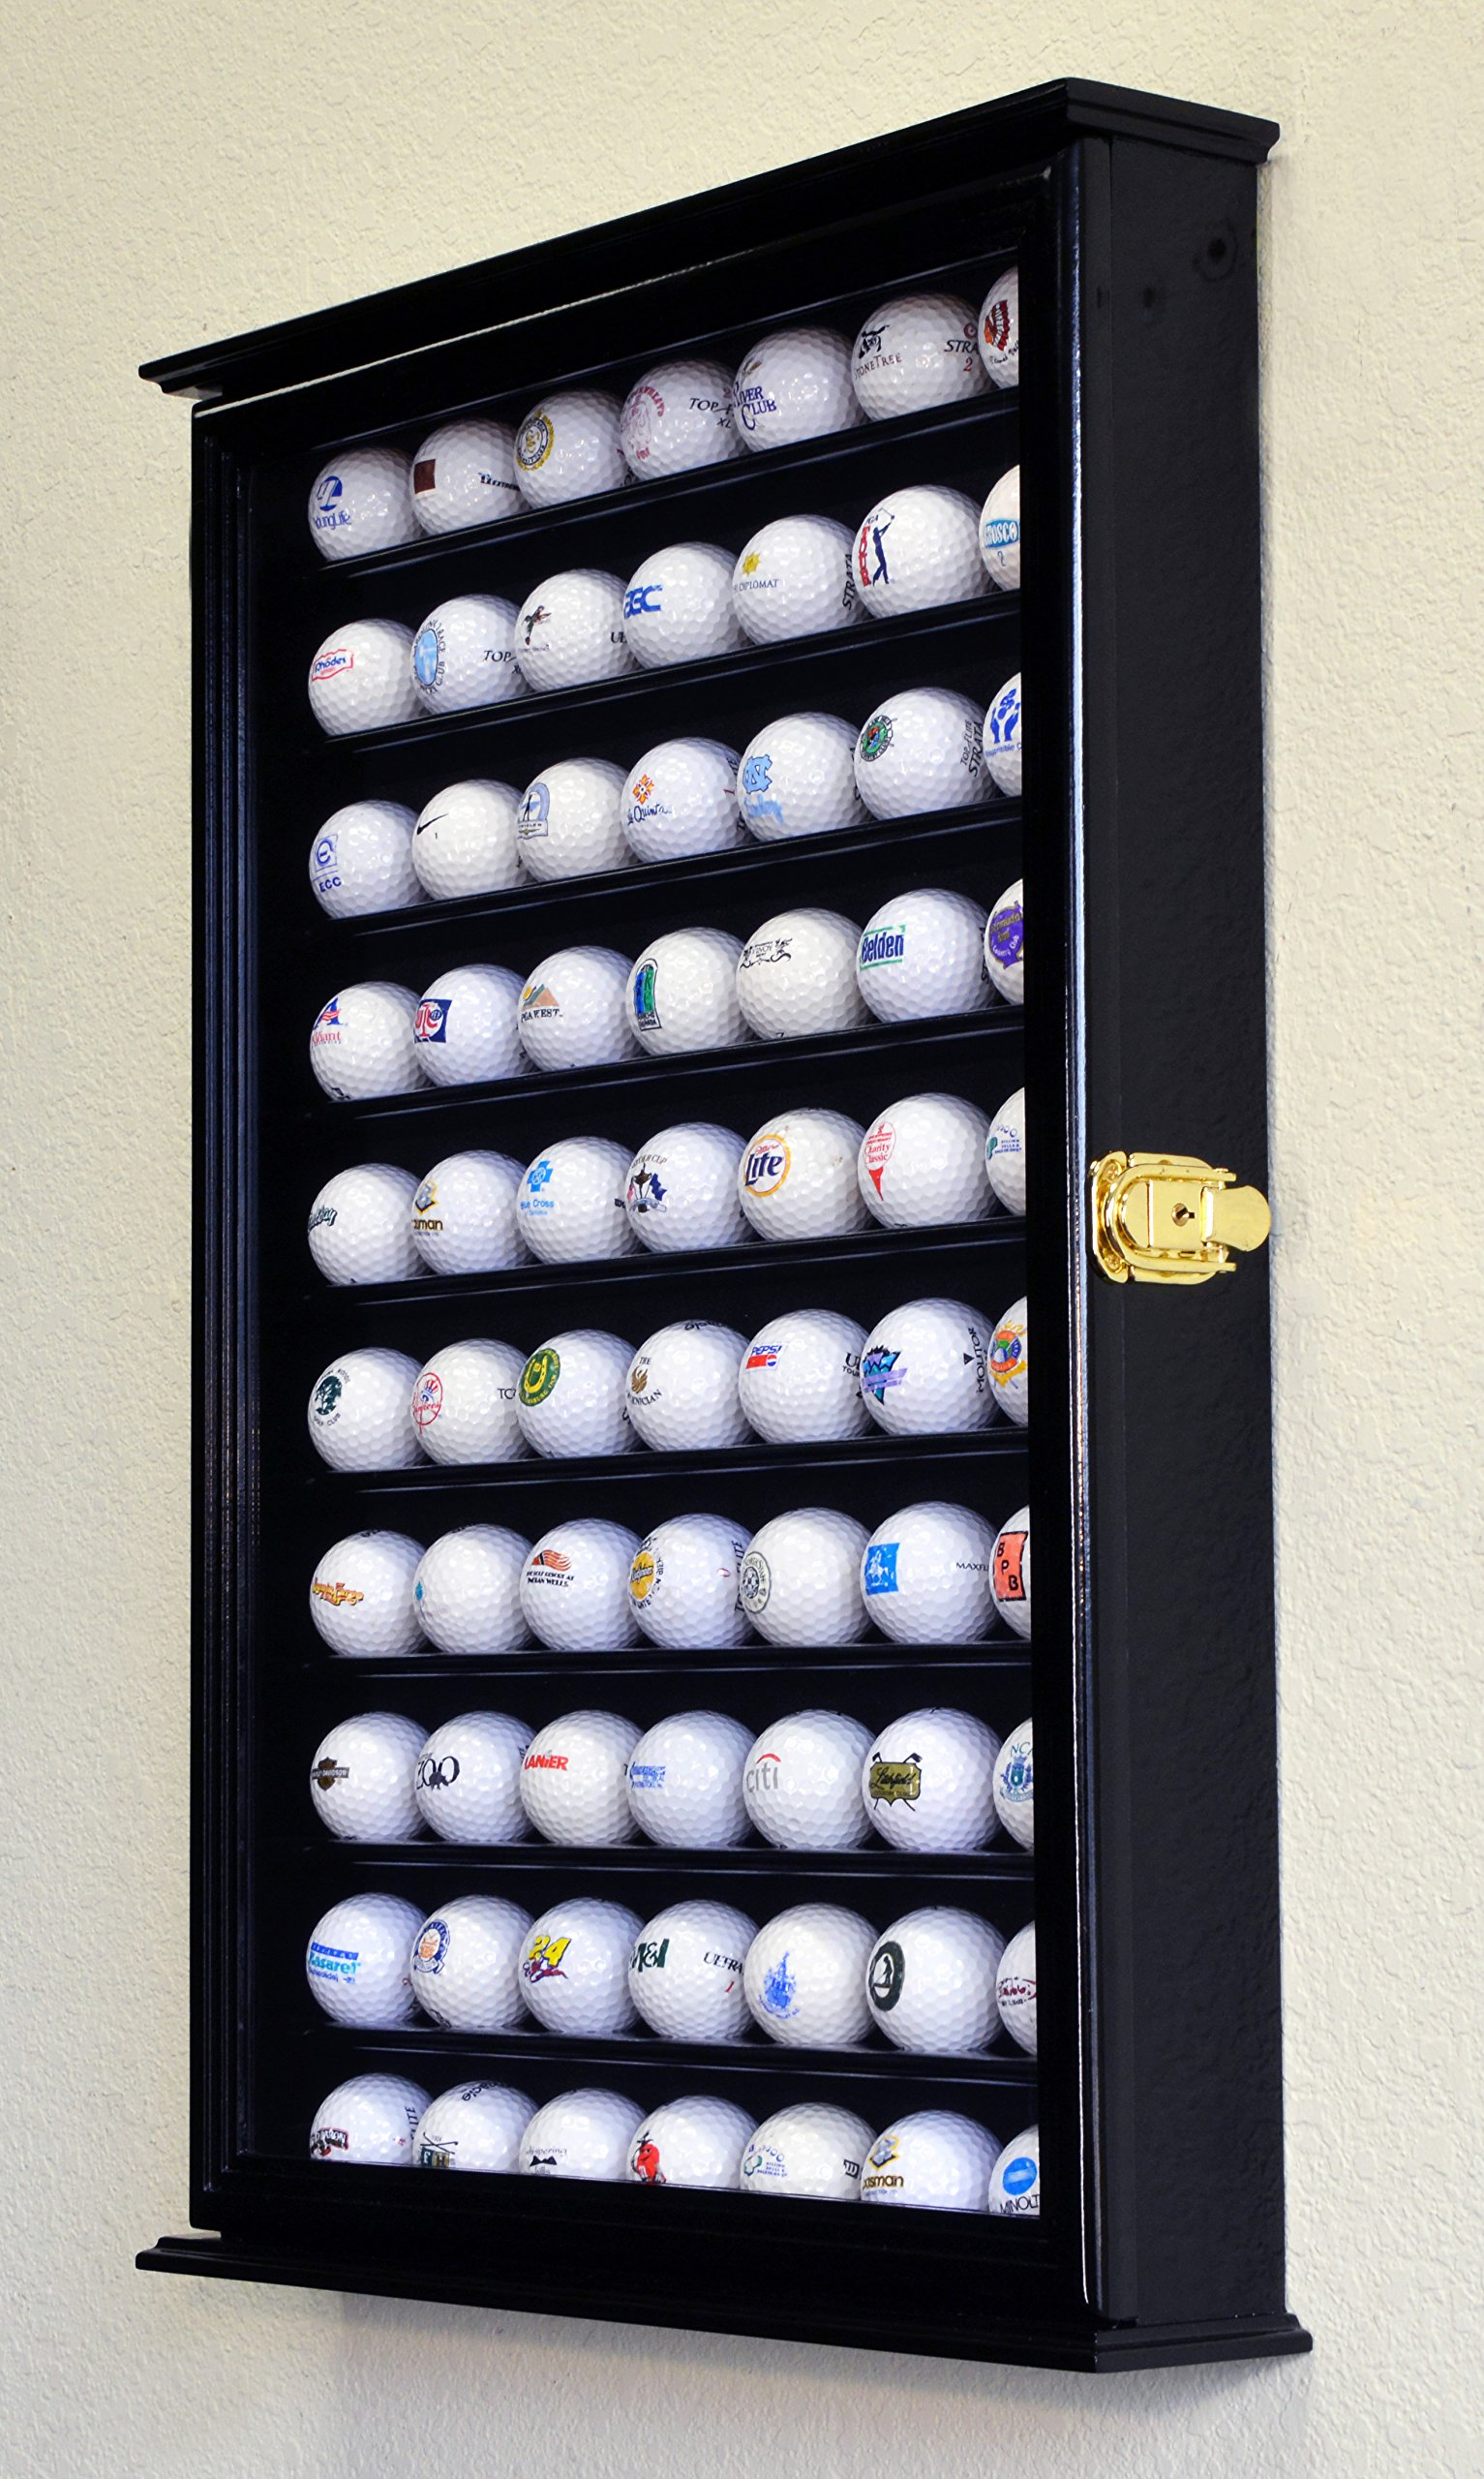 70 Golf Ball Display Case Cabinet Holder Wall Rack w/ UV Protection -Black by sfDisplay (Image #3)